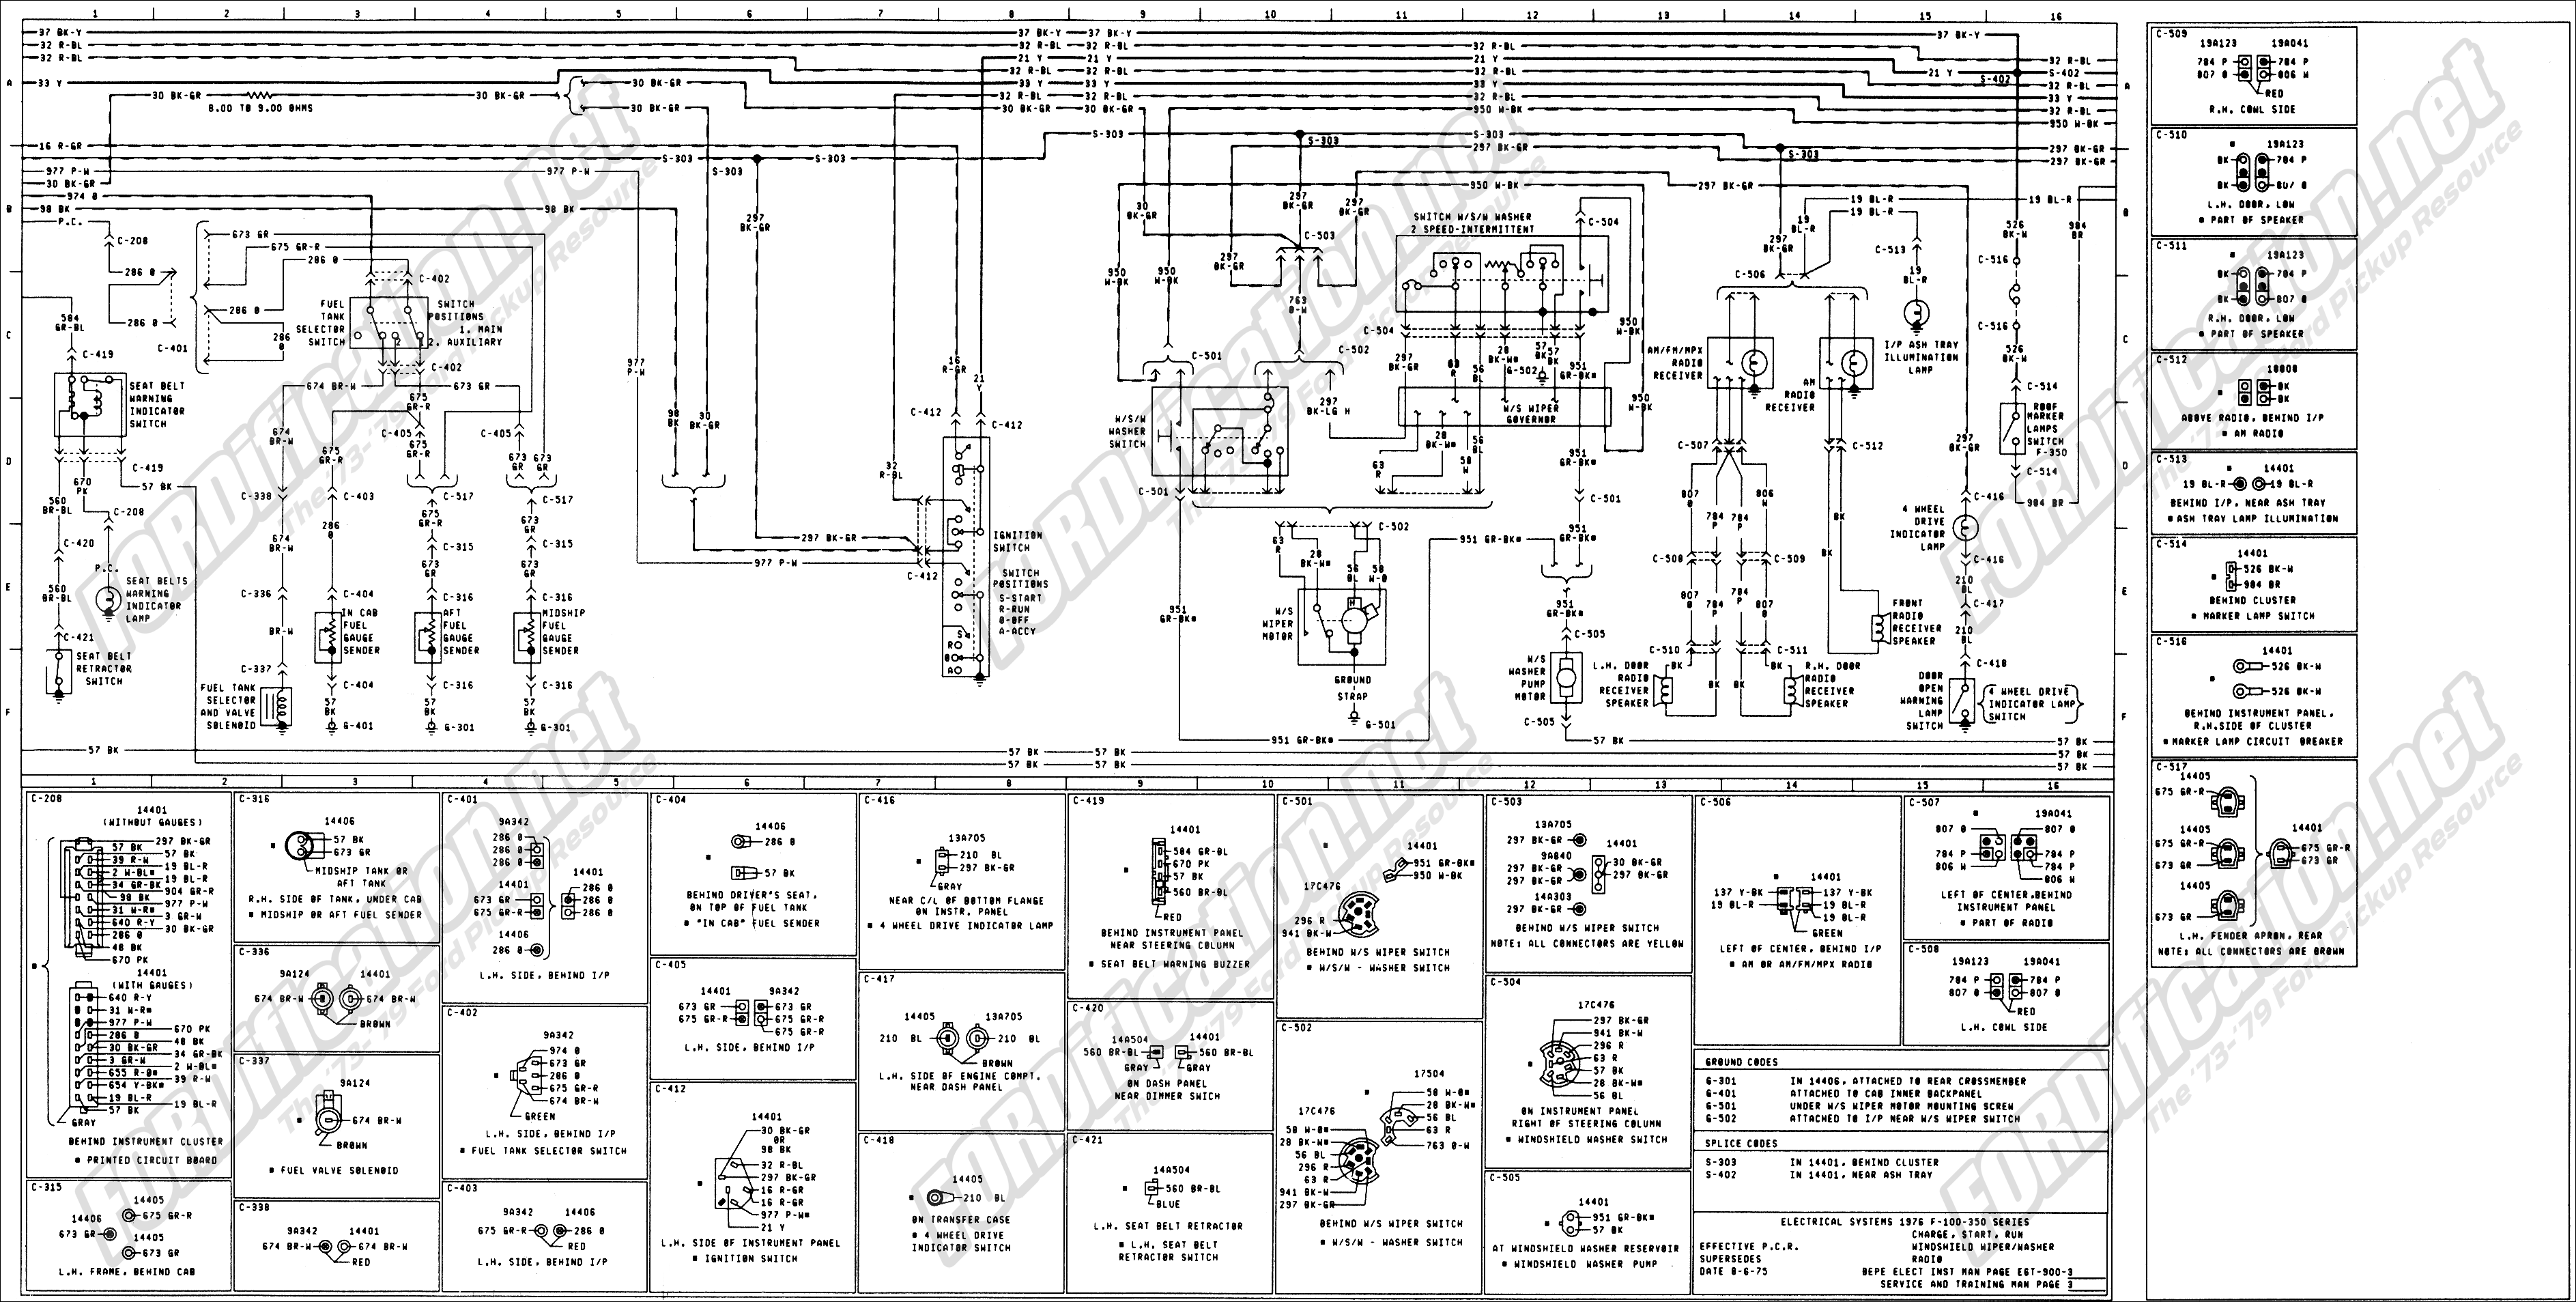 wiring_76master_3of9 1973 1979 ford truck wiring diagrams & schematics fordification net 1997 ford f350 wiring diagram at mifinder.co